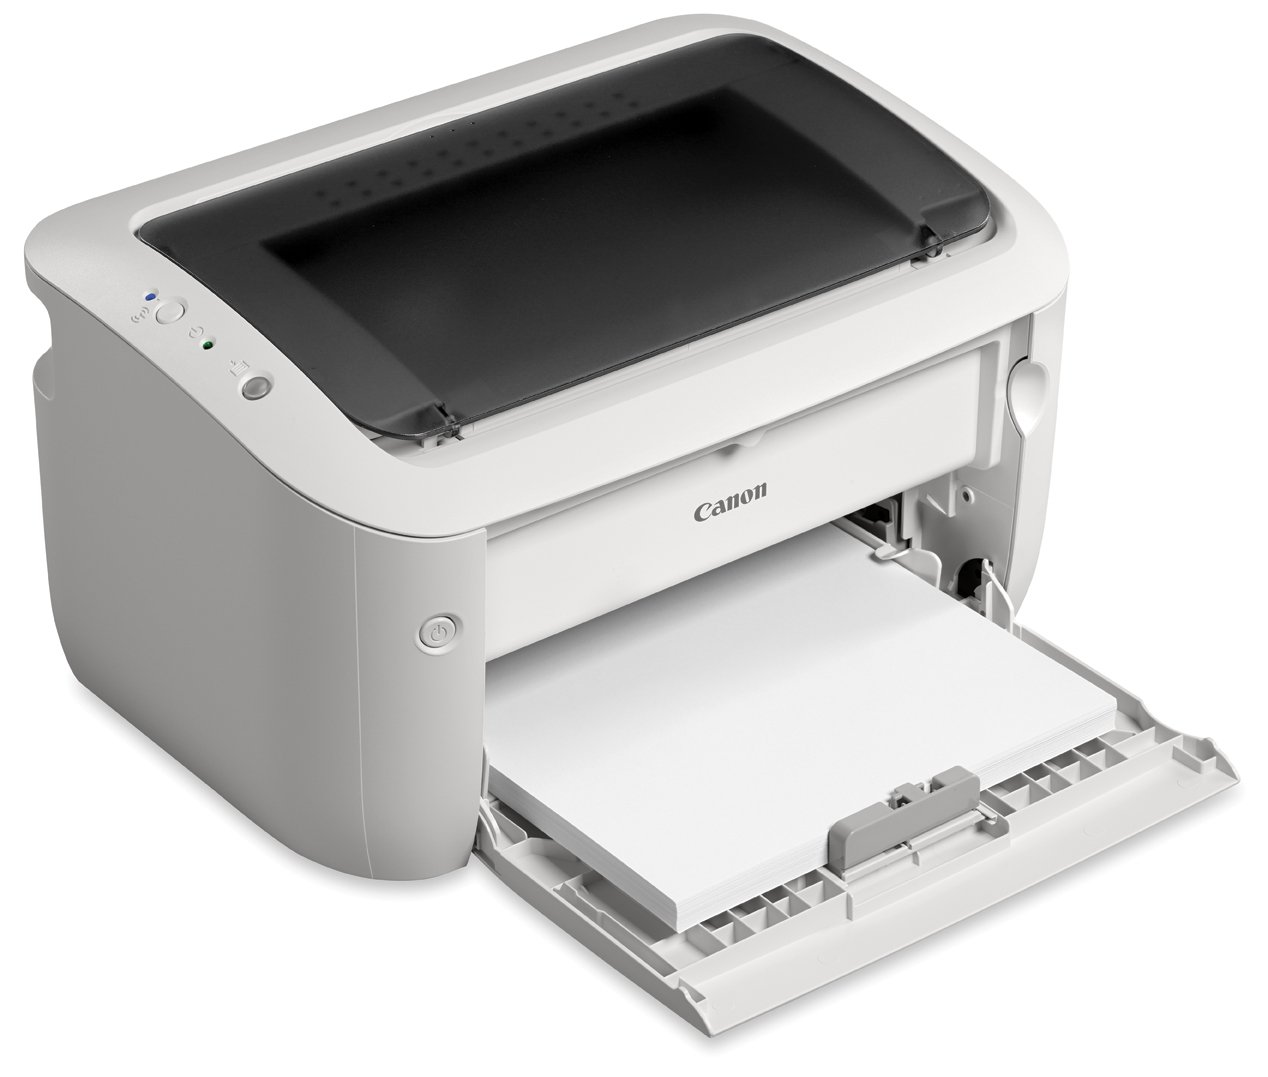 Canon Imageclass Lbp6030w Wireless Laser Printer The Single Large Doublesided Circuit Board From A Canola Electronics